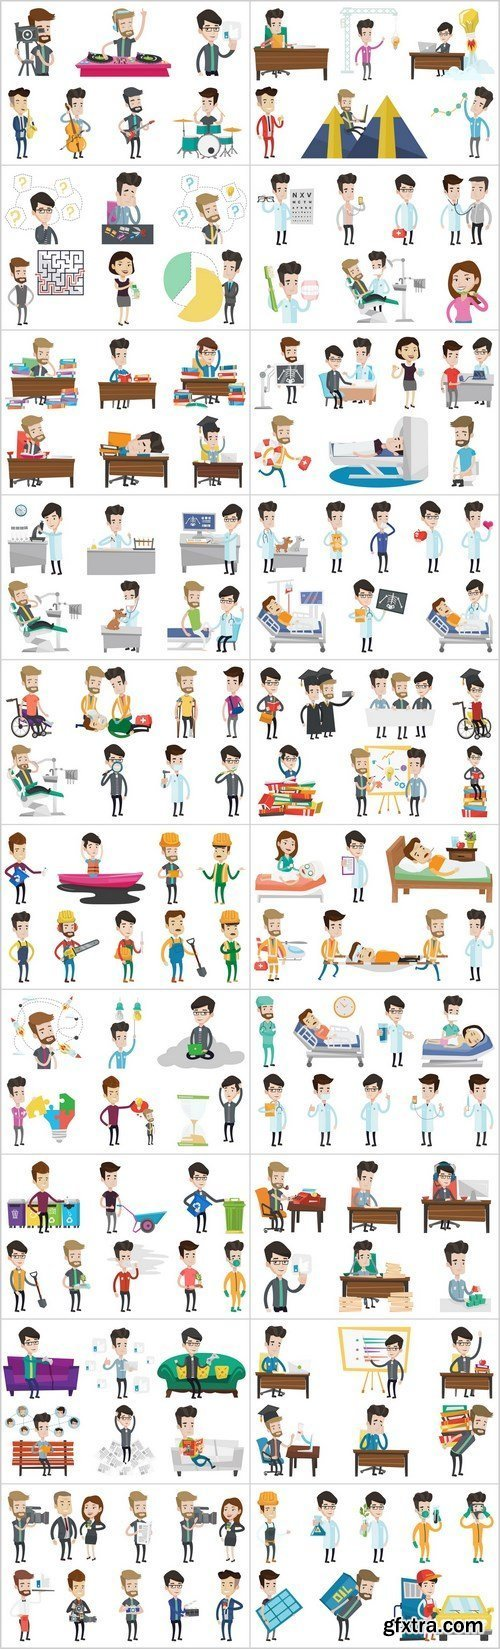 Business characters and life of people - Set of 20xEPS Professional Vector Stock